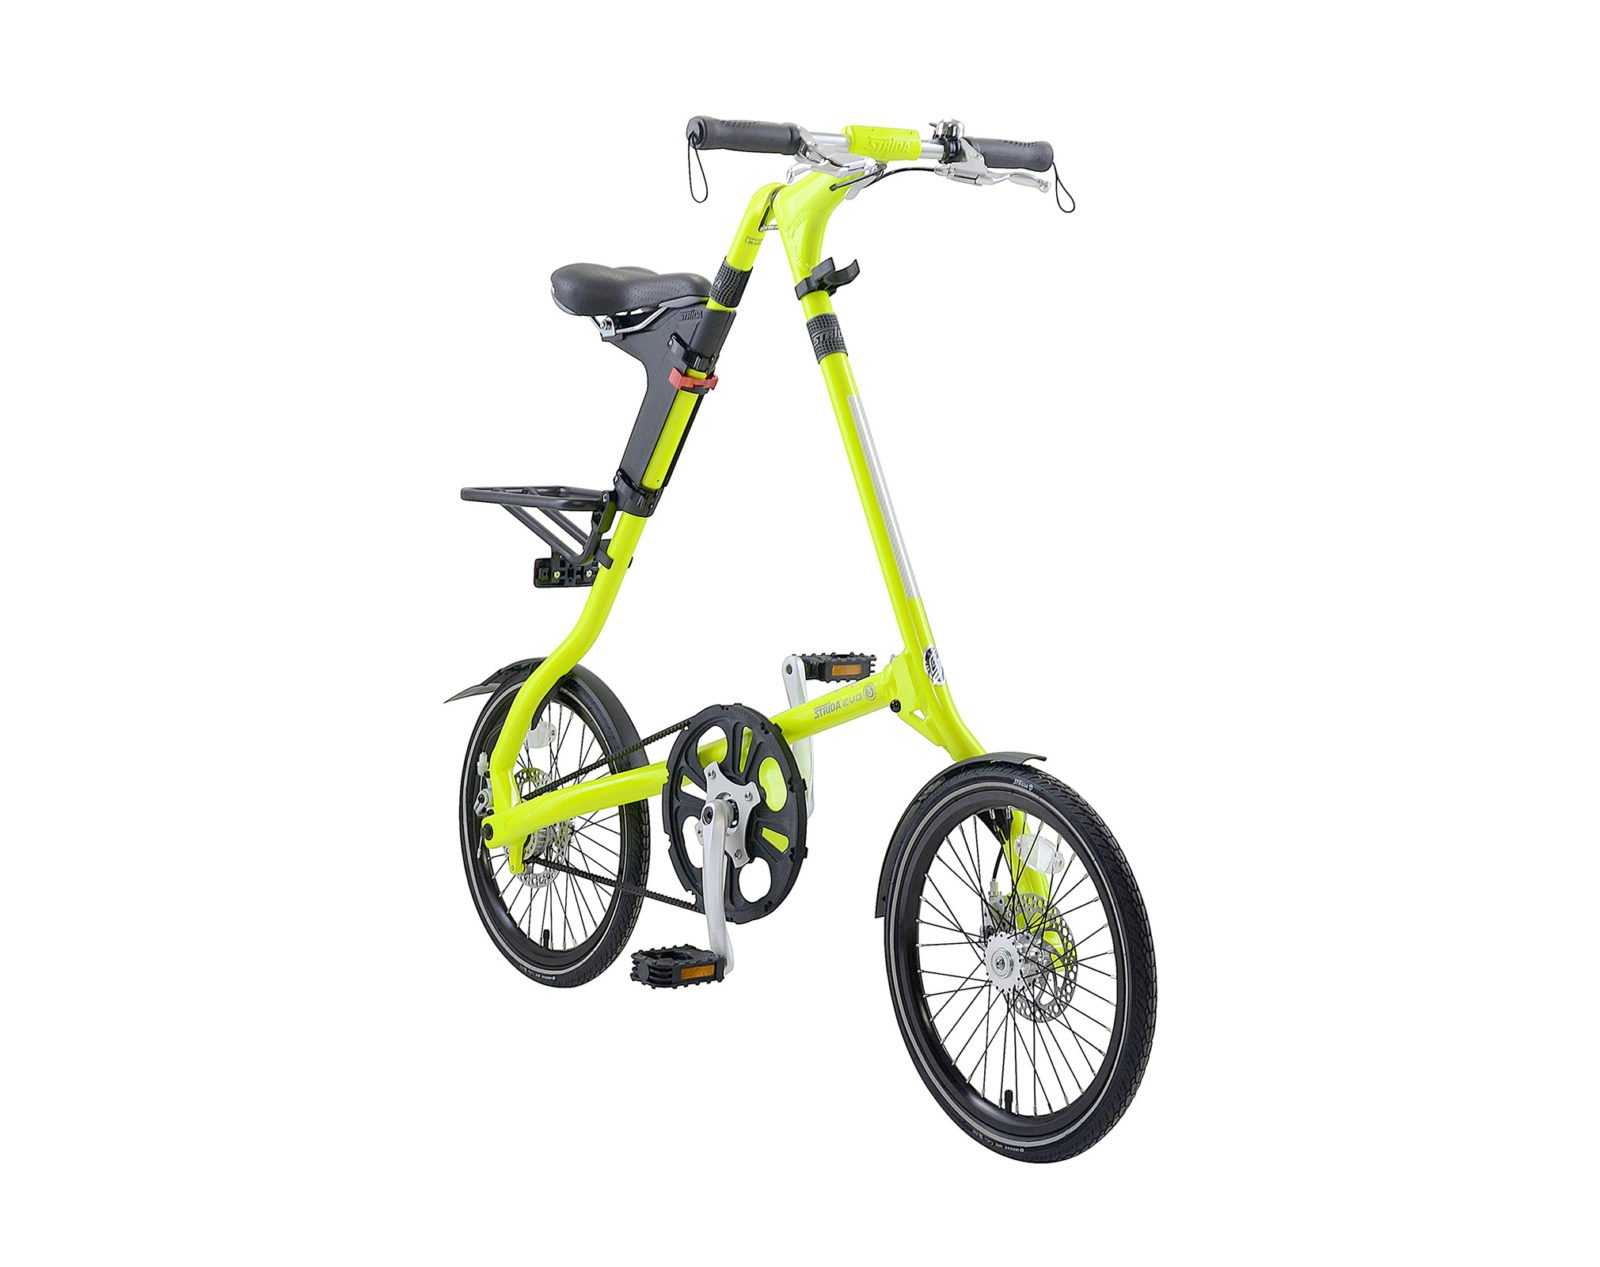 STRiDA EVO Folding Bicycle, Neon Yellow-31725